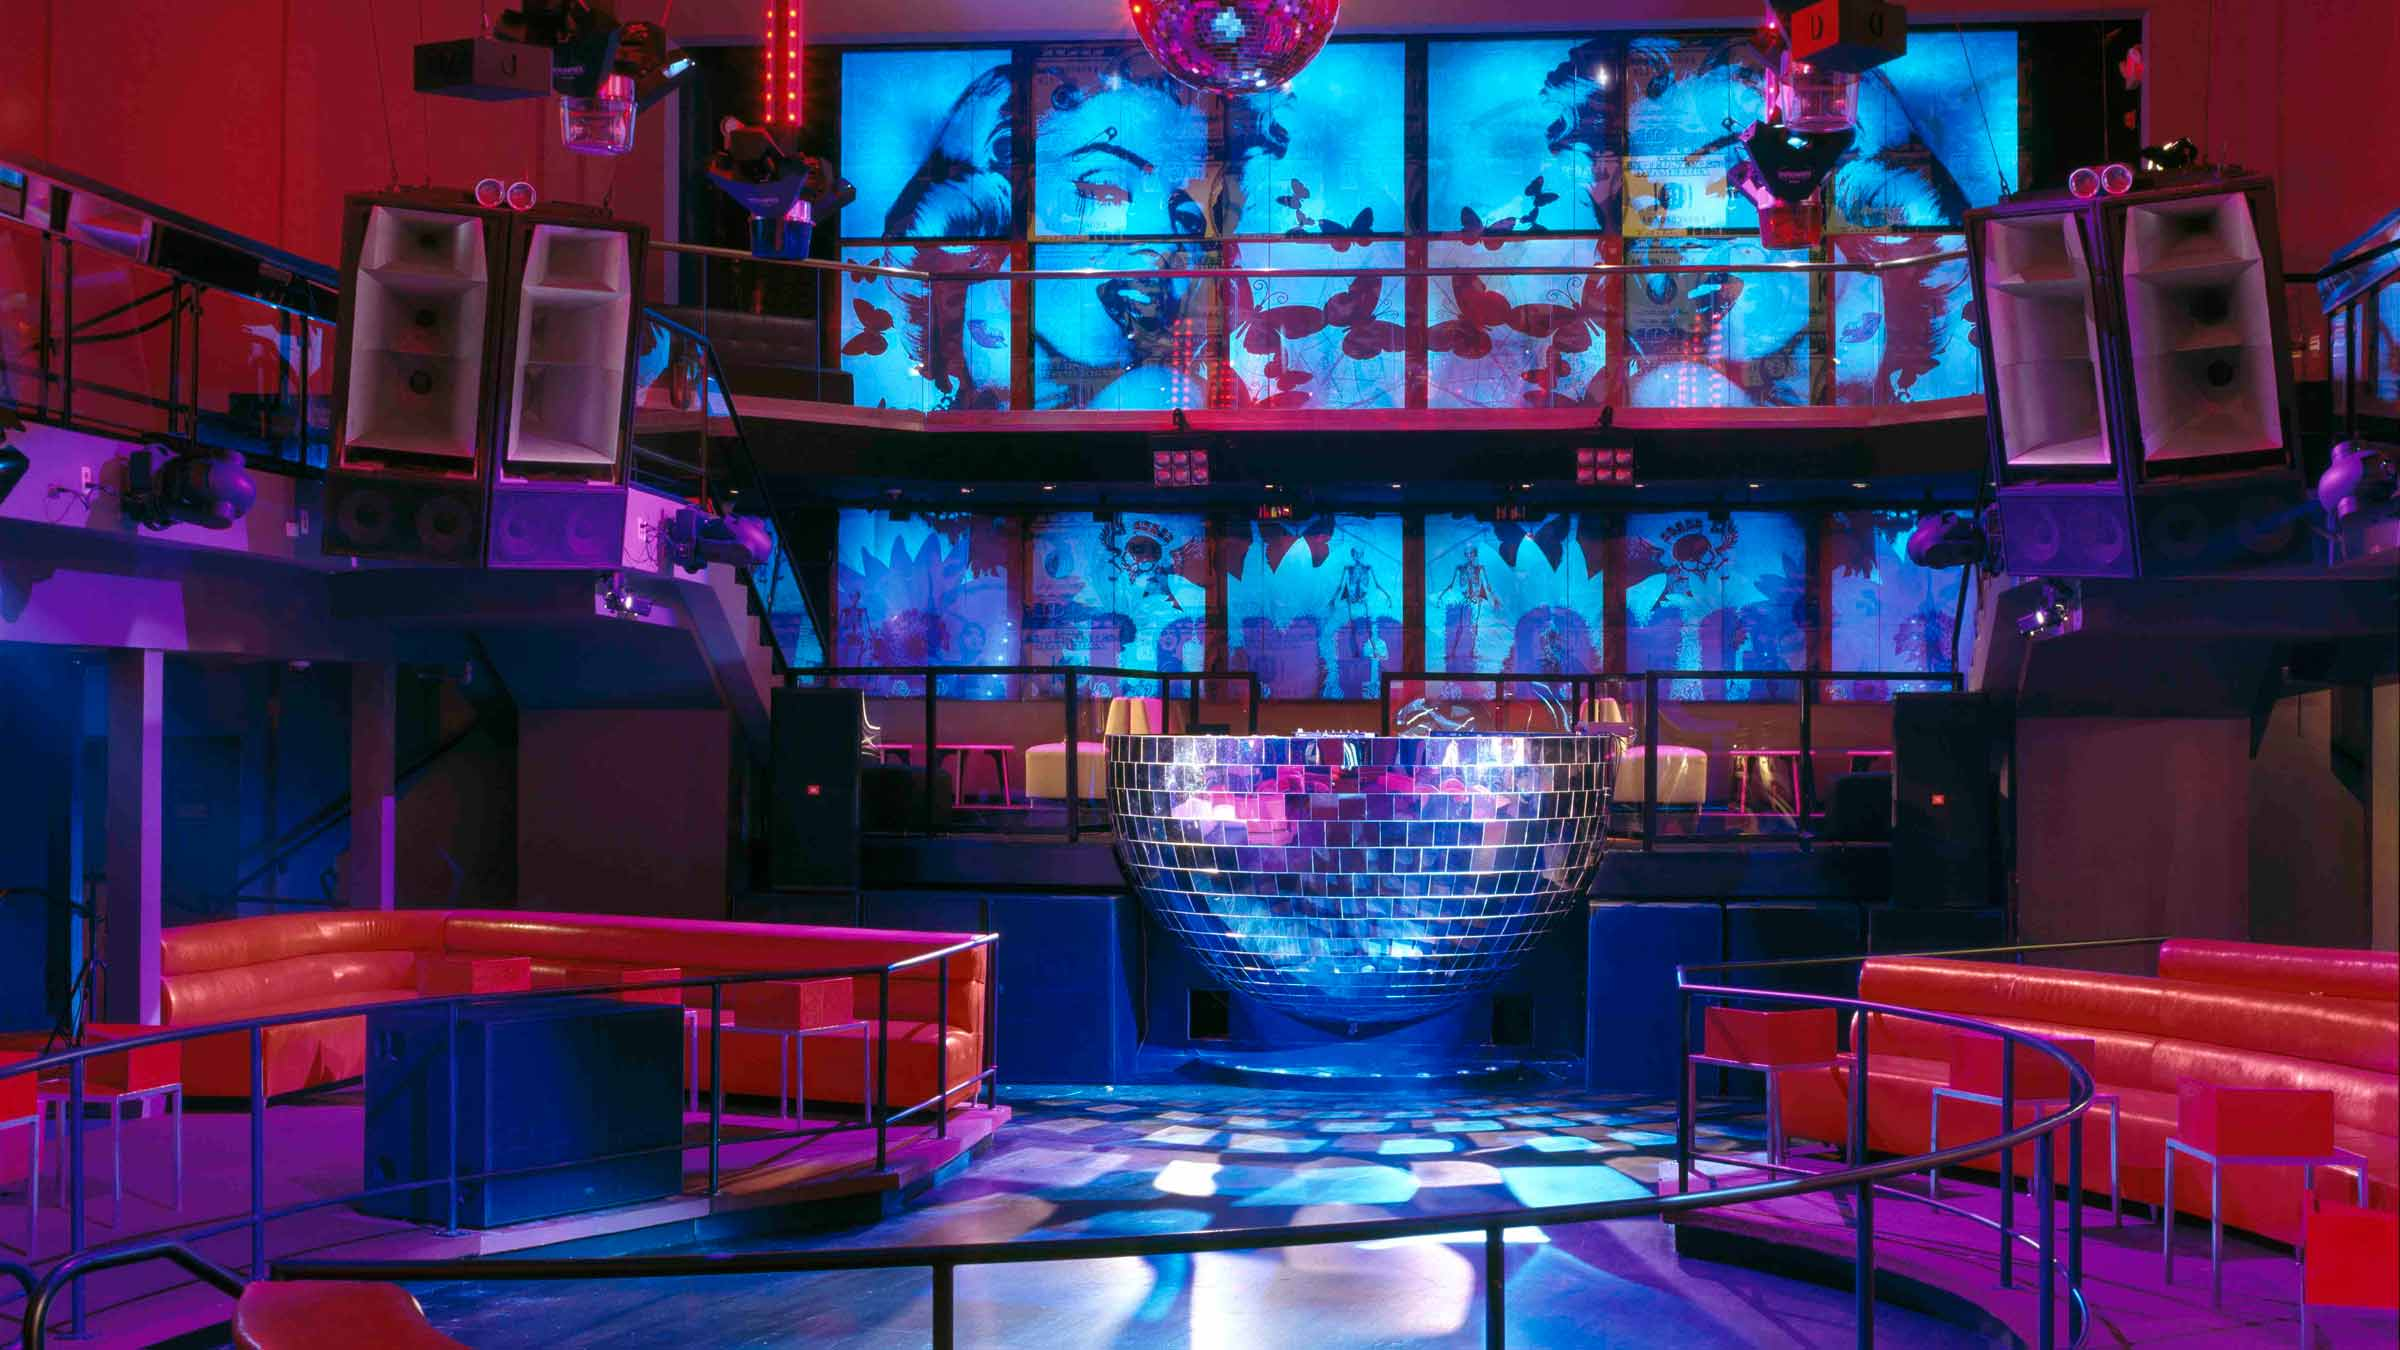 nightclub design - Nightclub Design Ideas